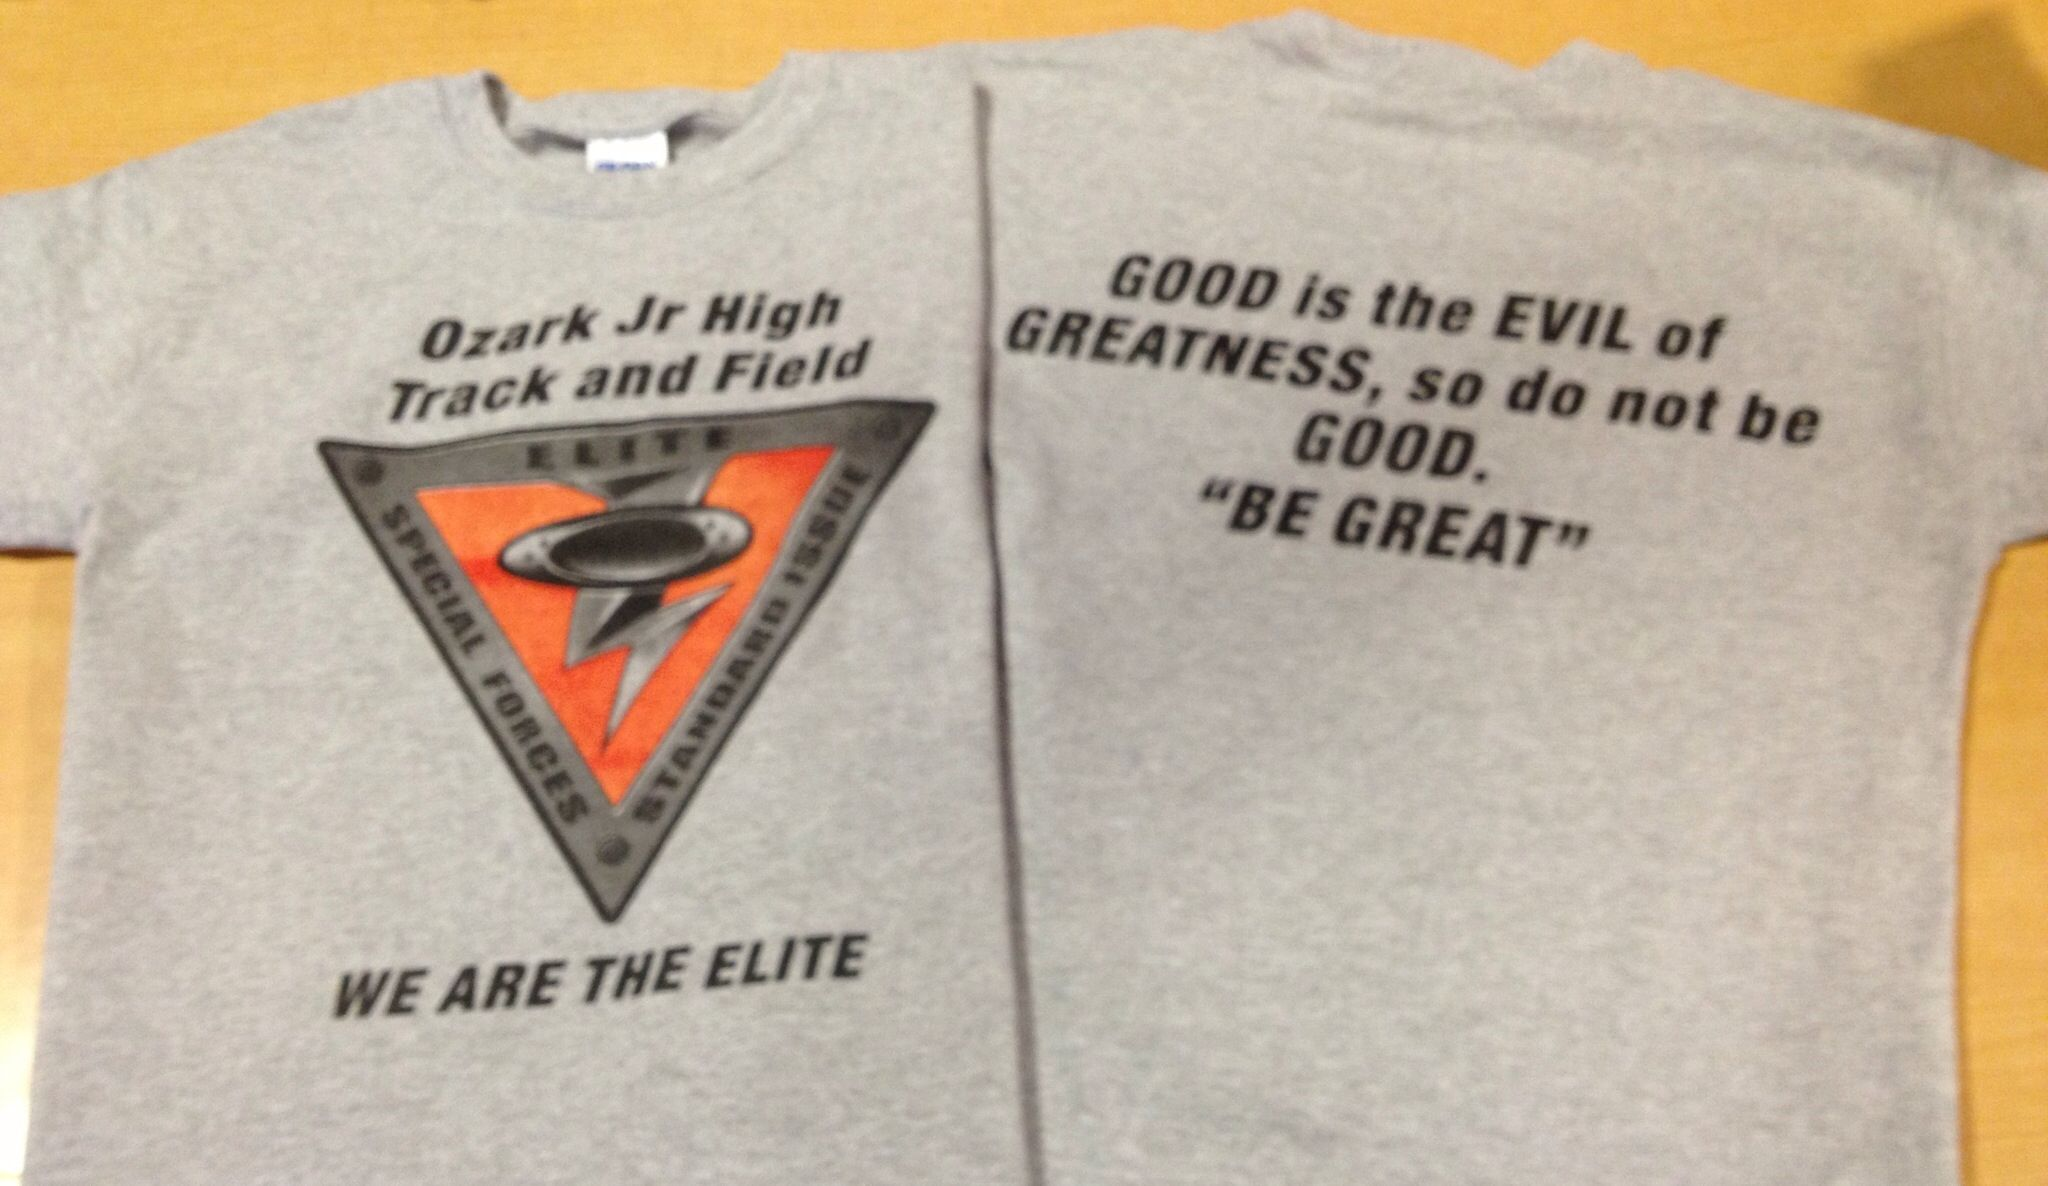 Ozark Jr High Track And Field We Are The Elite Good Is The Evil Of Greatness So Do Not Be Good Be Gre Ozark Greatful Junior High